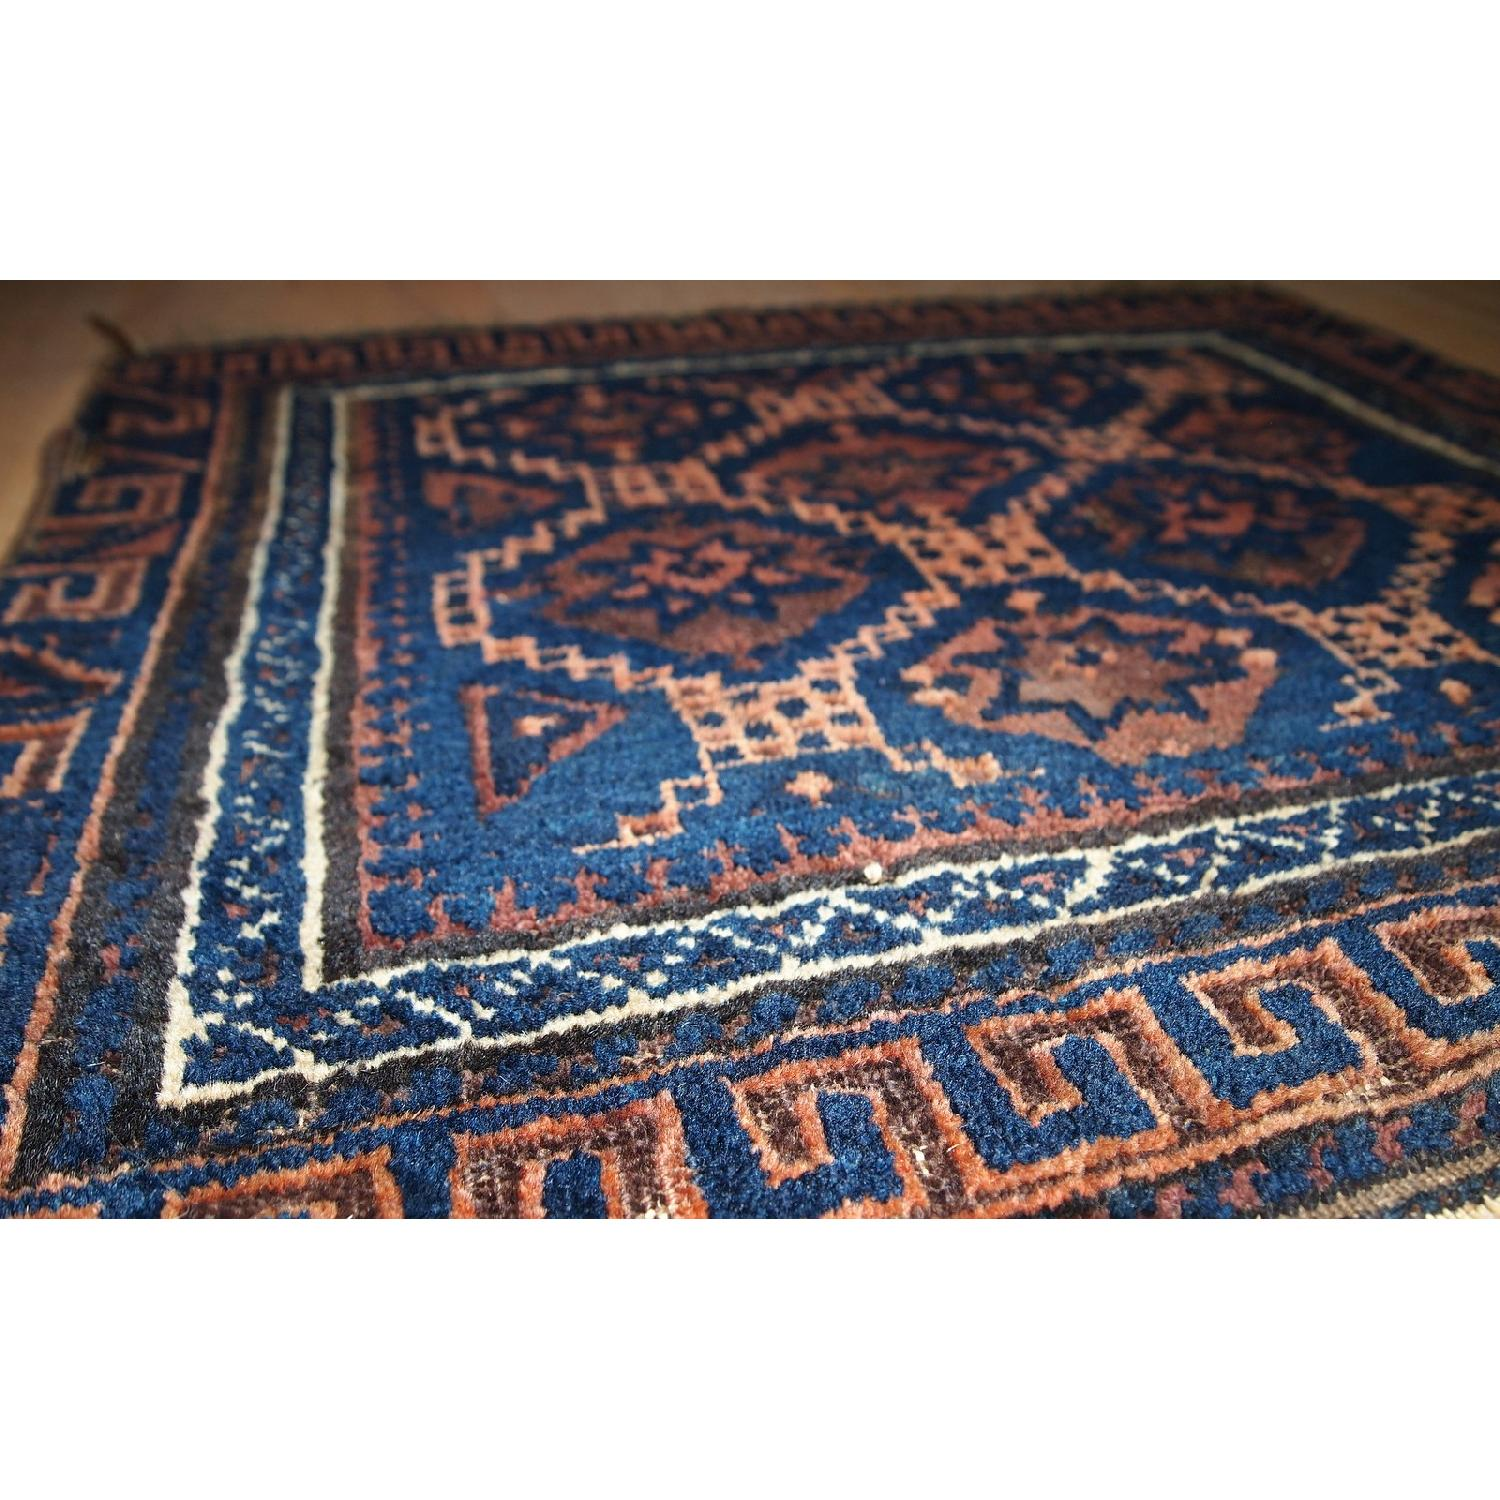 Antique Handmade Collectible Afghan Baluch Bag Face Rug - image-4